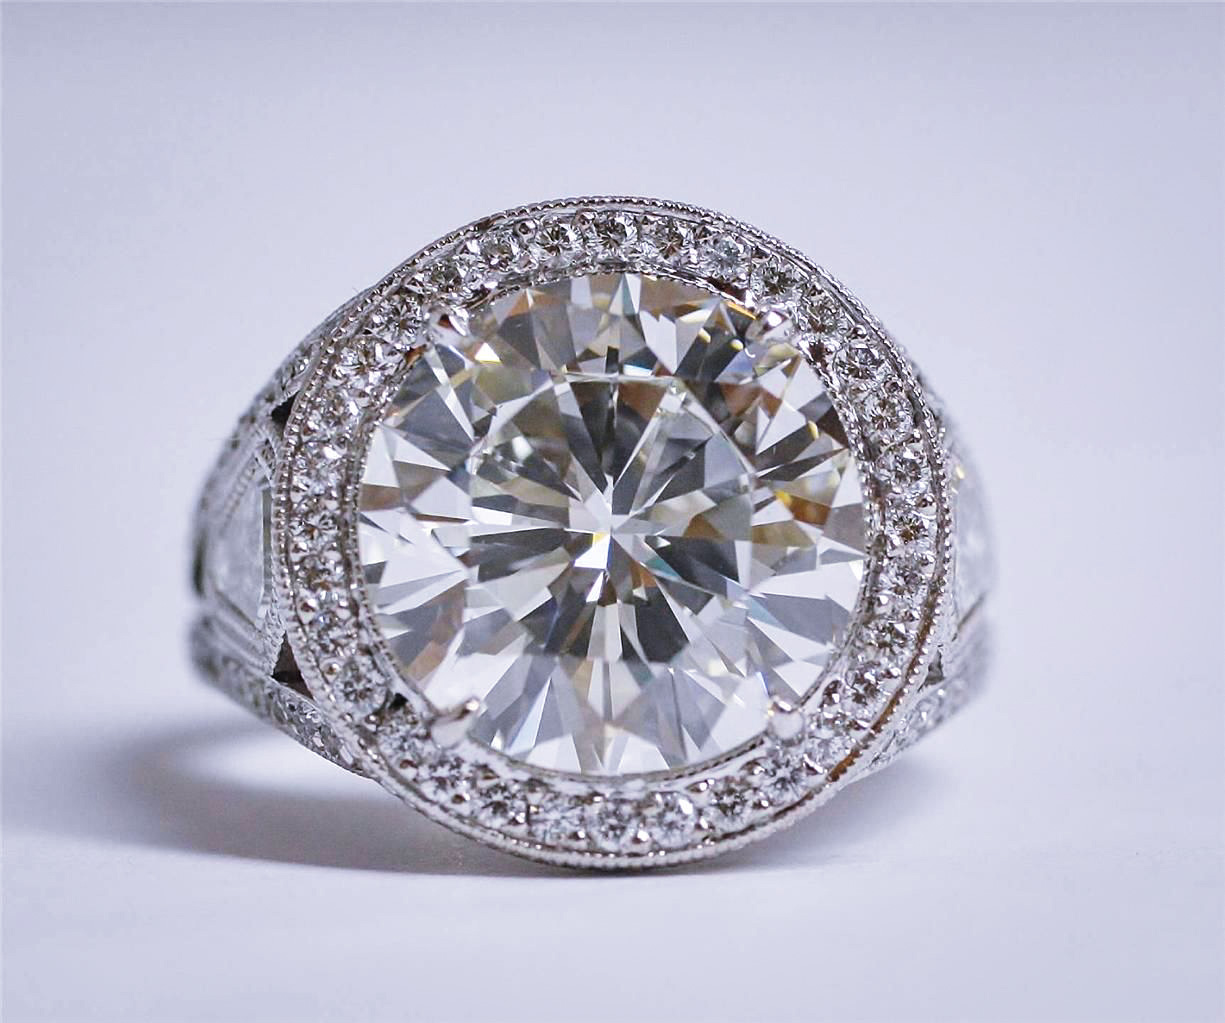 Sell Diamond Jewelry in Sacramento CA